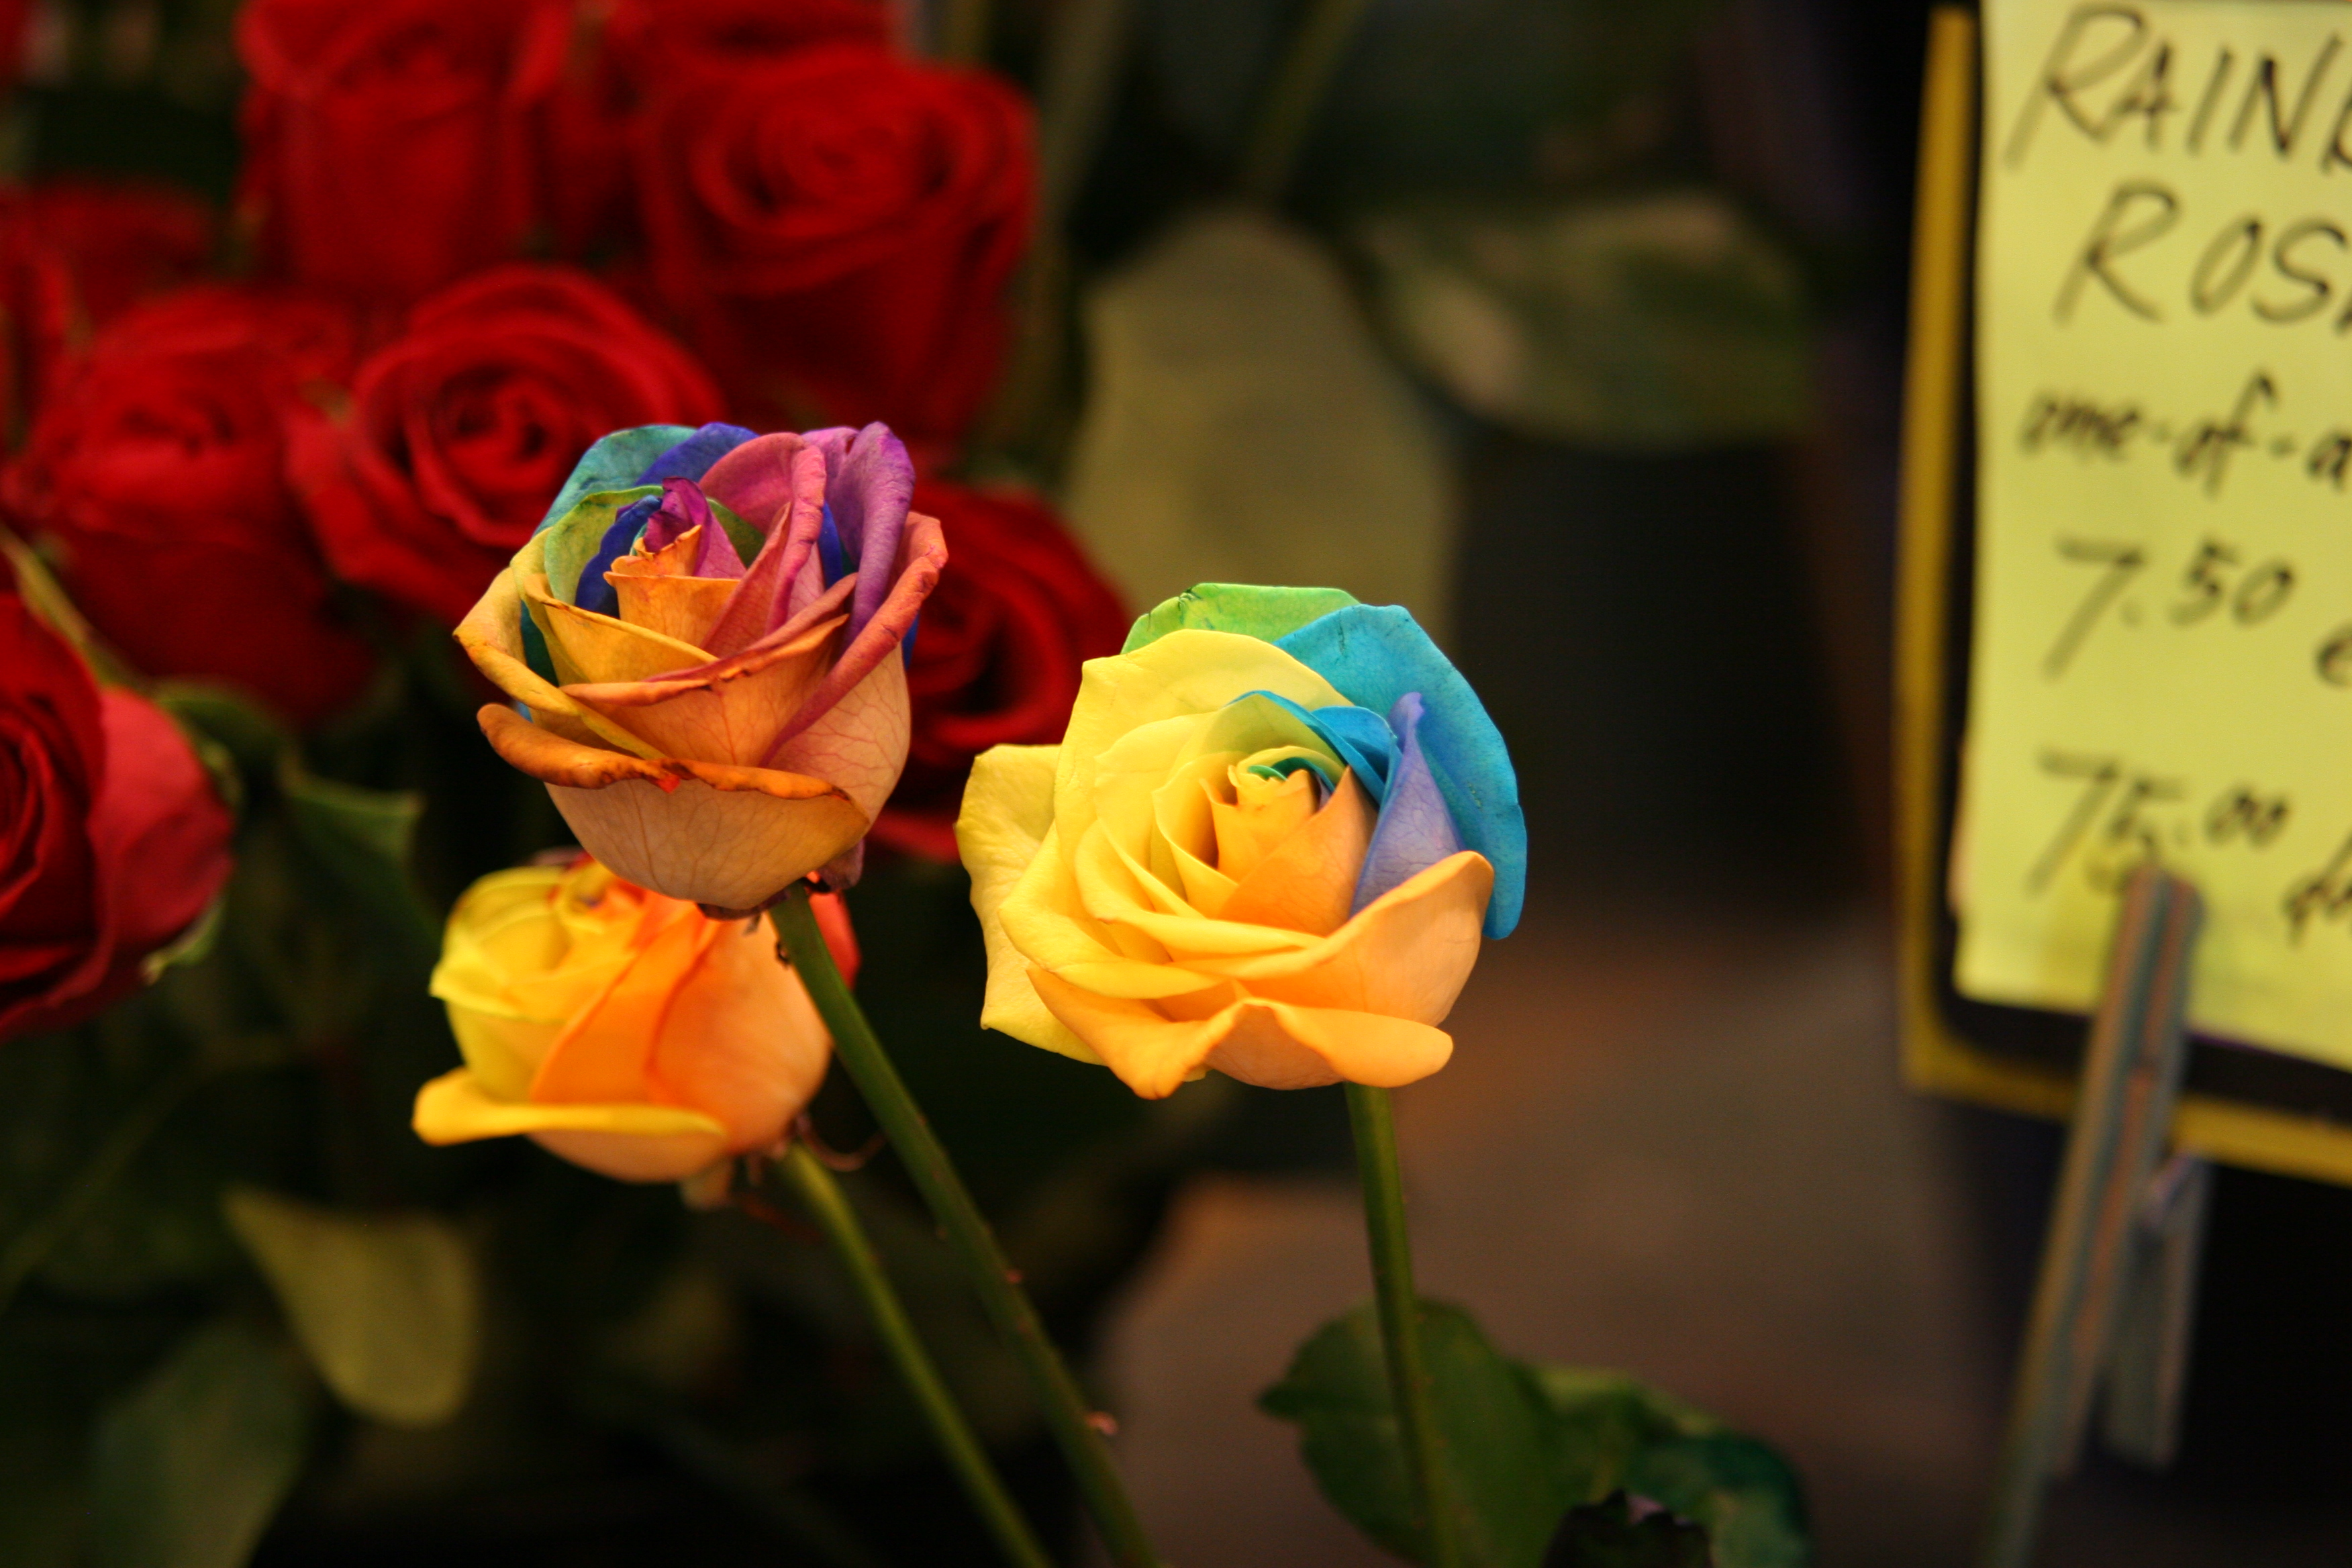 roses images download